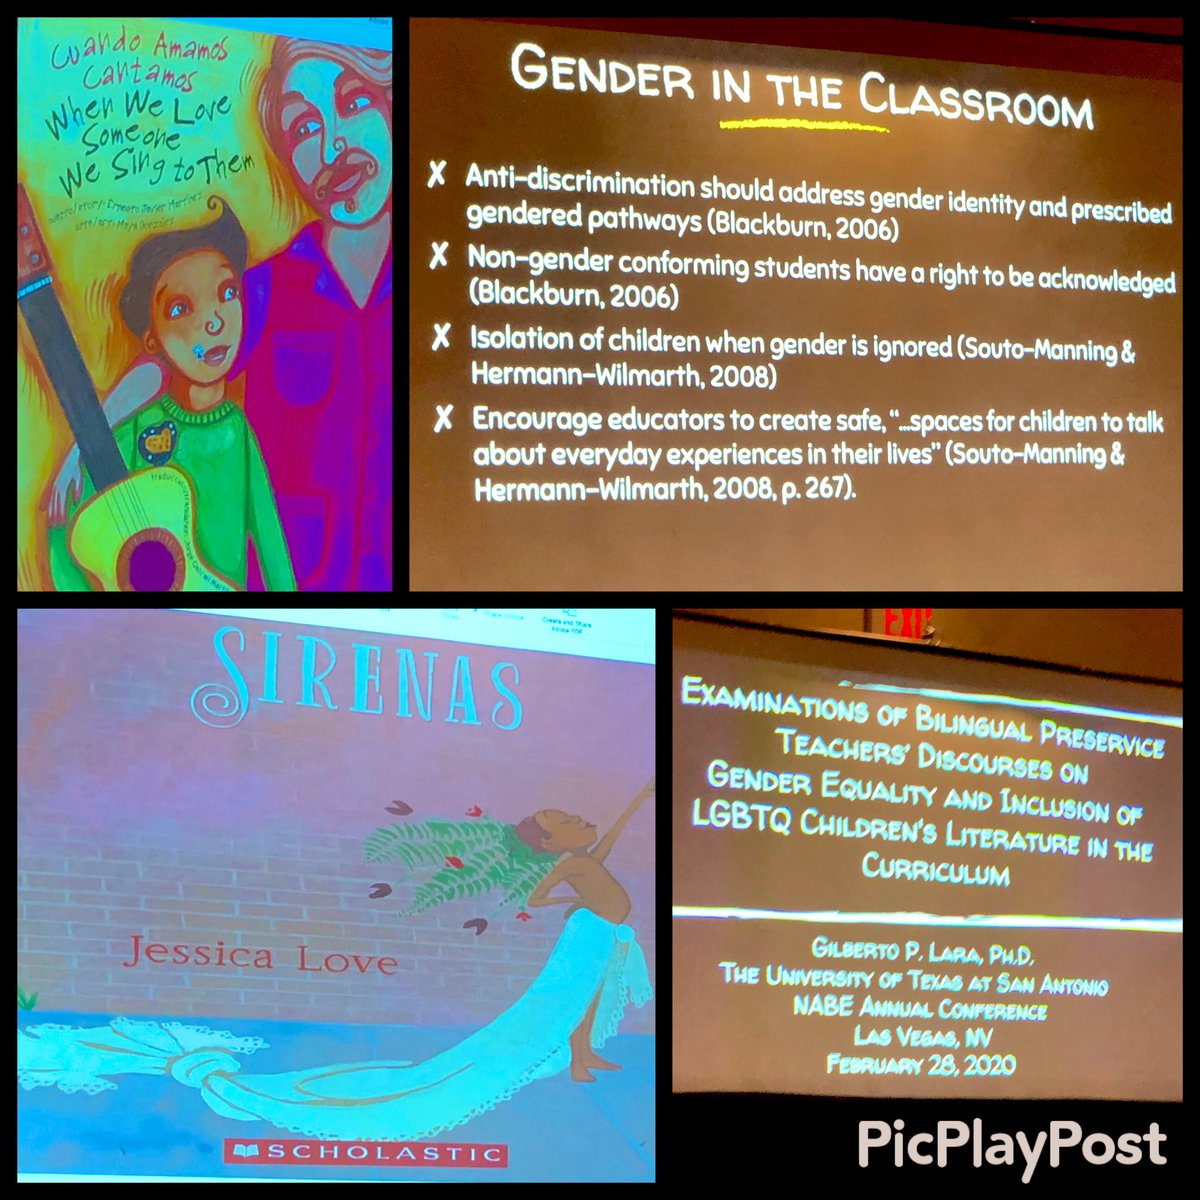 test Twitter Media - Thank you @NABEorg and Dr. Lara for such an informative and motivating session focused on #GenderEquality and fostering #InclusivePractices by using #LGBTQ children's literature! #NABE2020 #Inclusion #Equity  #CulturalCompetence @HISDMultiPrgms @MLAnnaWhite @Jererita_Wilson https://t.co/Eu1V5vpCGL